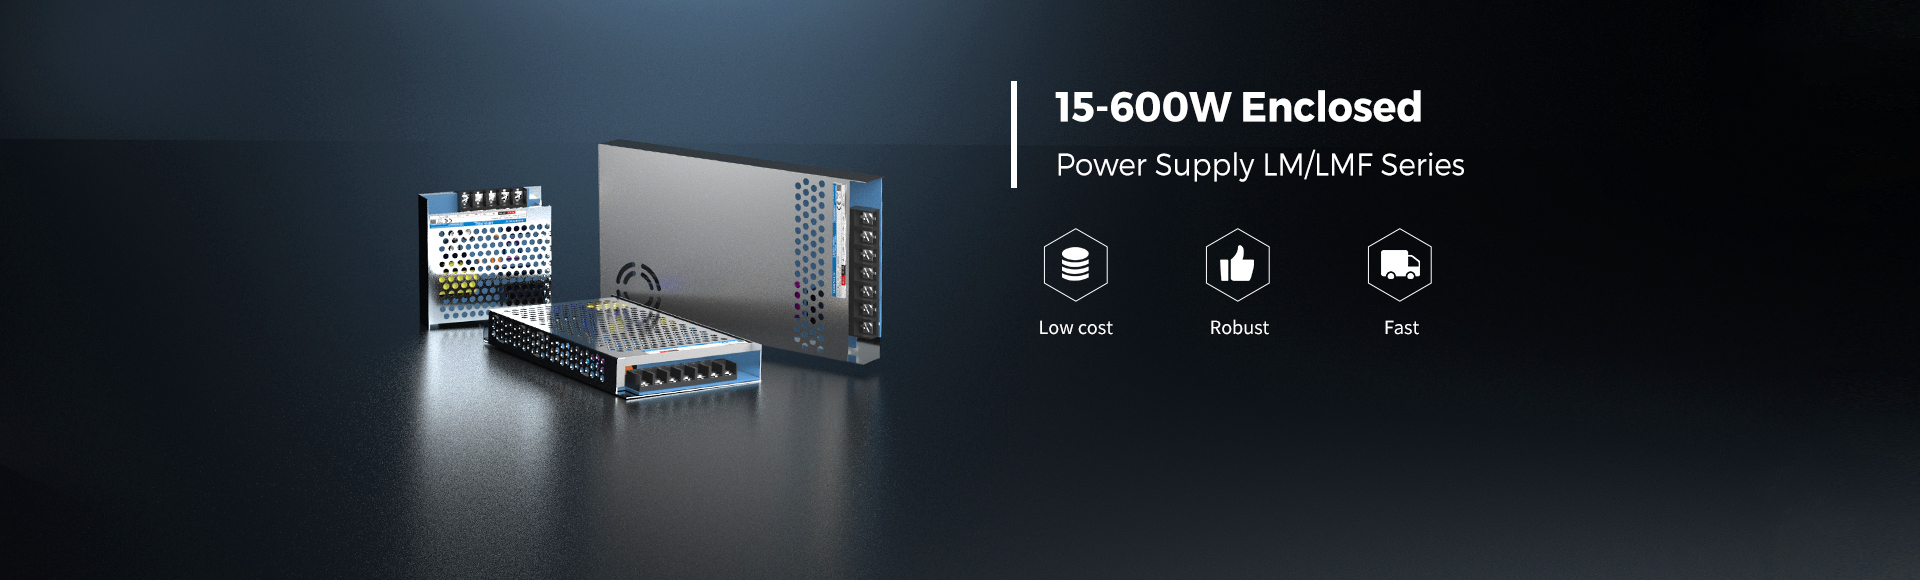 Mornsun 15-600W enclosed switching power supply